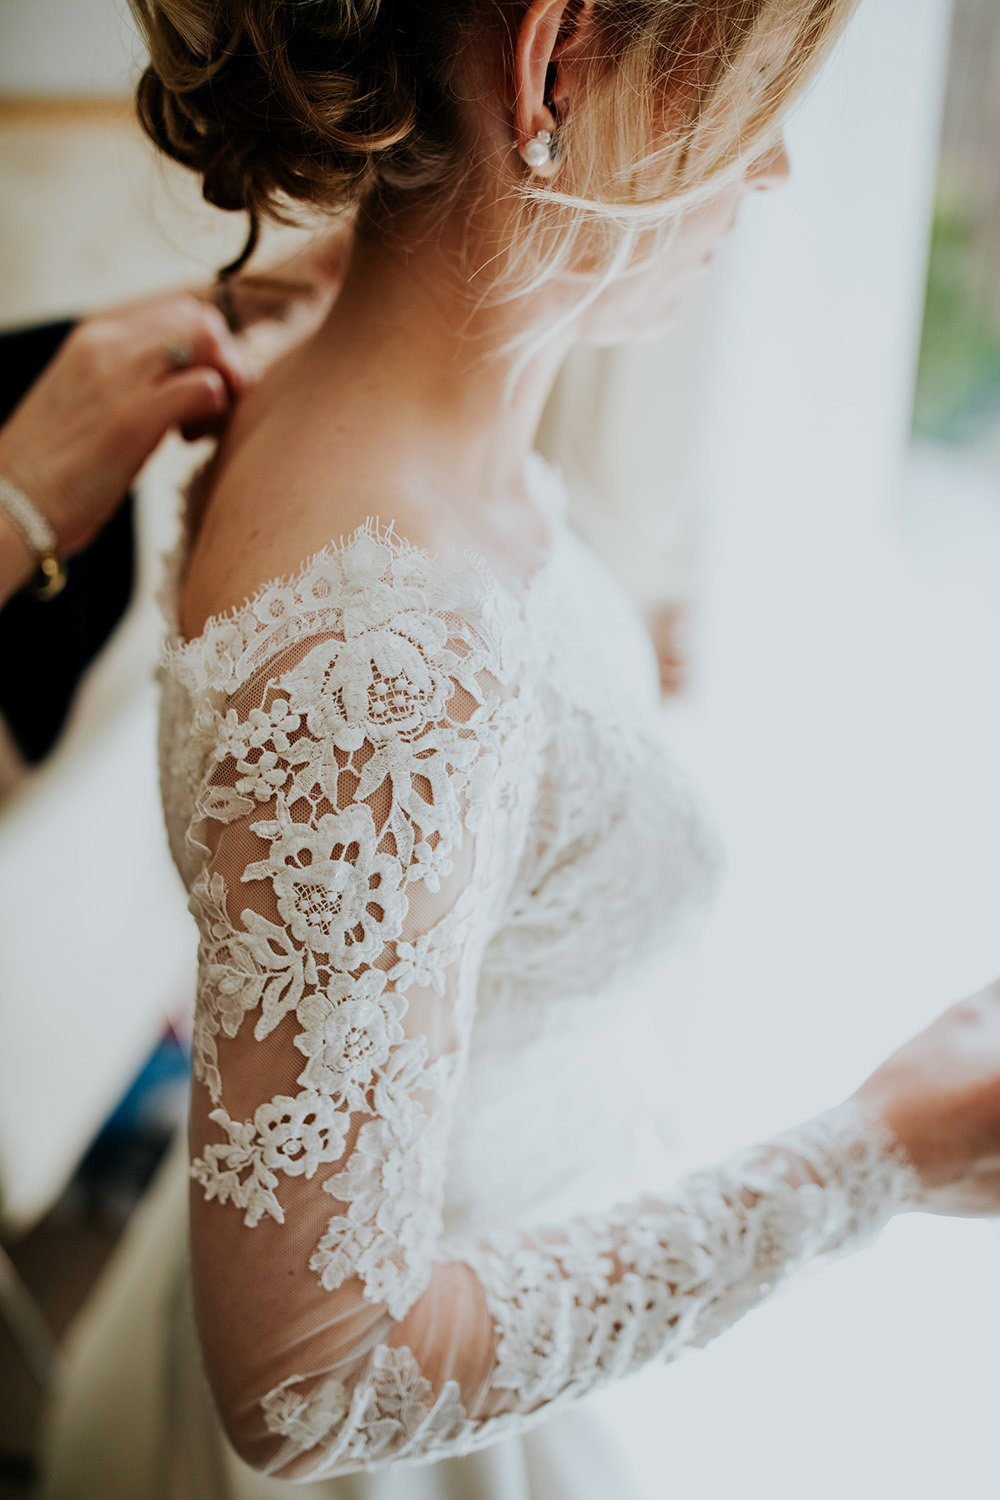 Dress Gown Bride Bridal Lace Long Sleeves Bardot Off Shoulder Train Veil Scandi Foliage Wedding Ross Alexander Photography